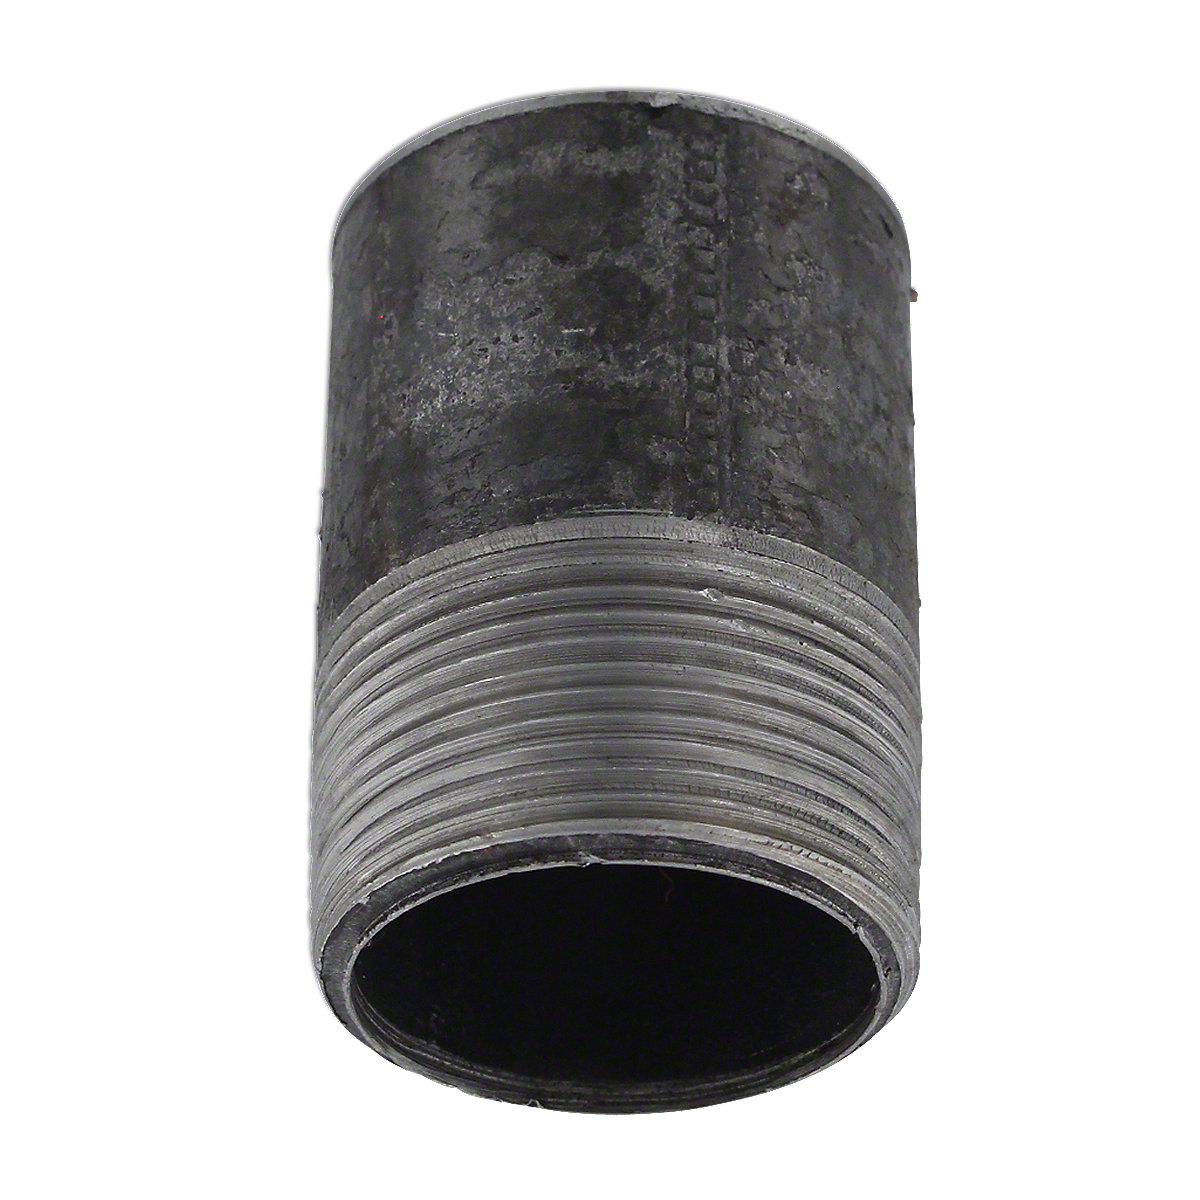 Exhaust Pipe For Massey Harris: Colt, 101jr, 20, 22, 30, 81.